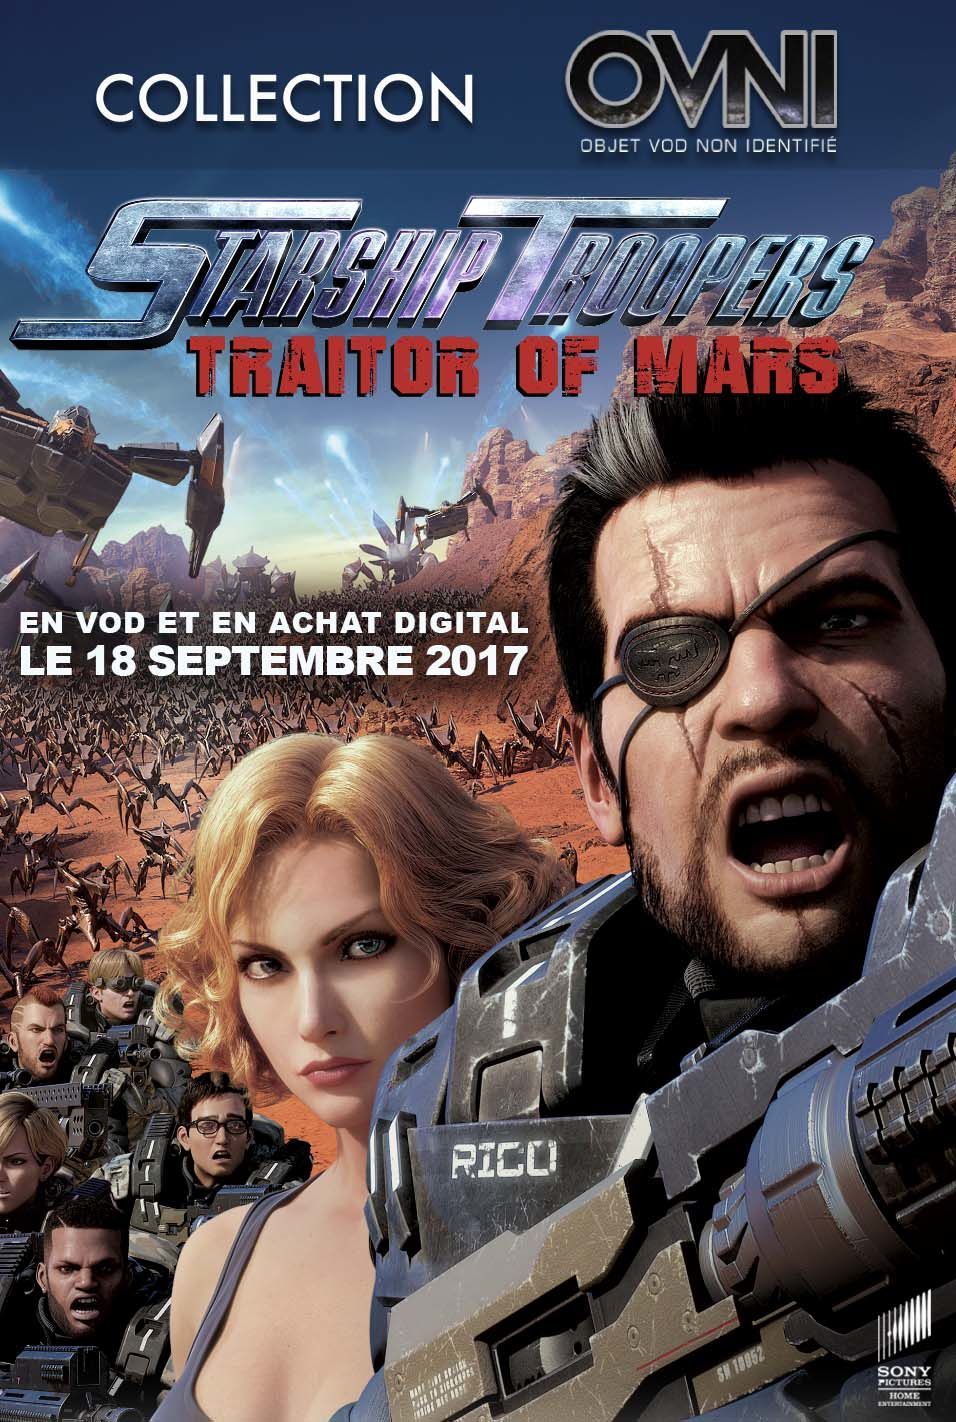 STARSHIP TROOPERS : TRAITOR OF MARS - En VOD et achat digital, le 18 septembre 2017